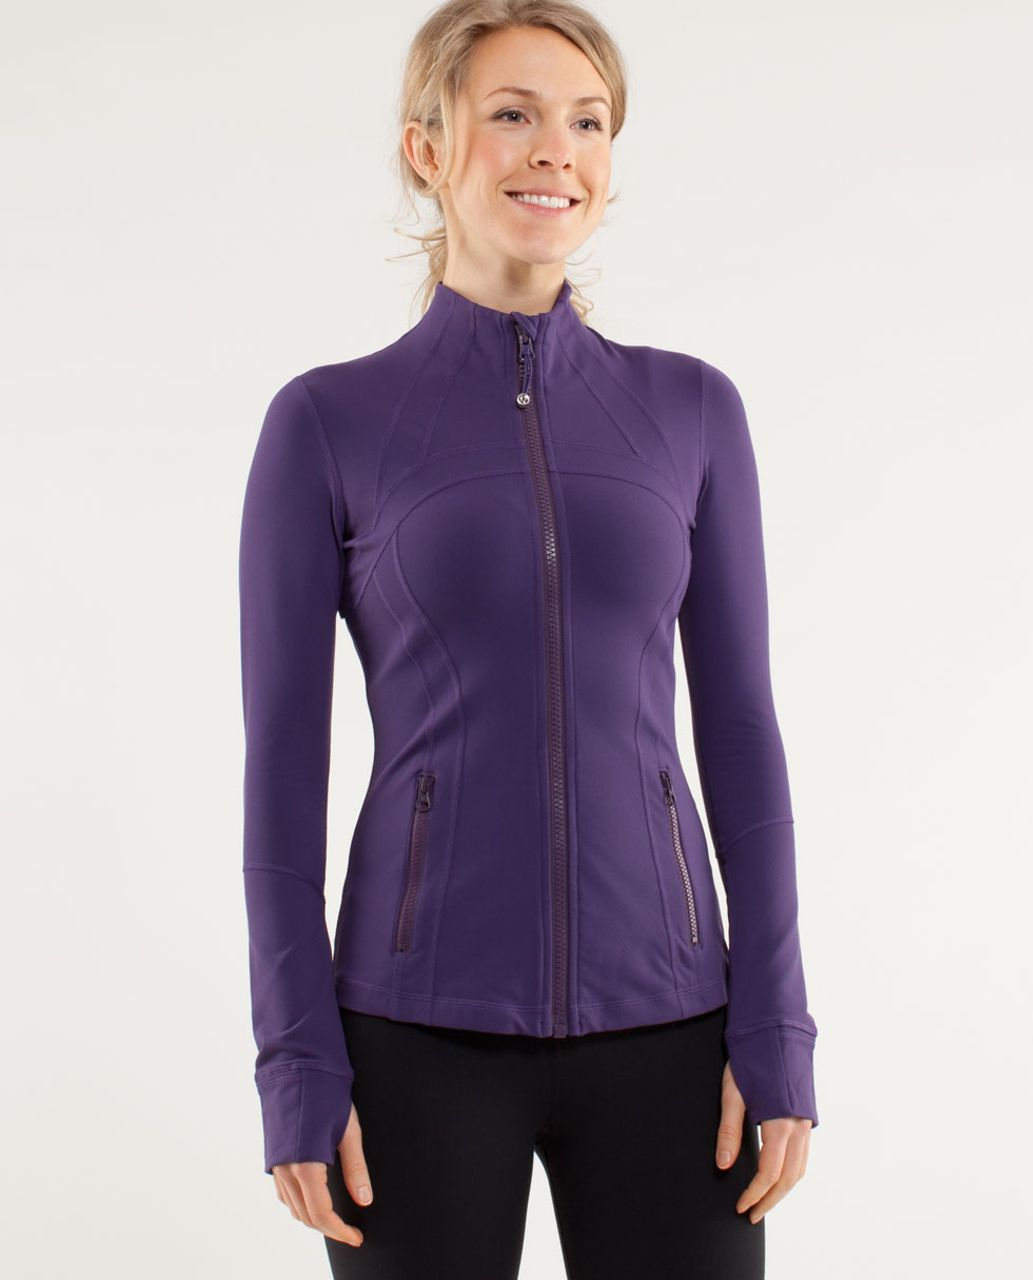 Lululemon Define Jacket - Concord Grape